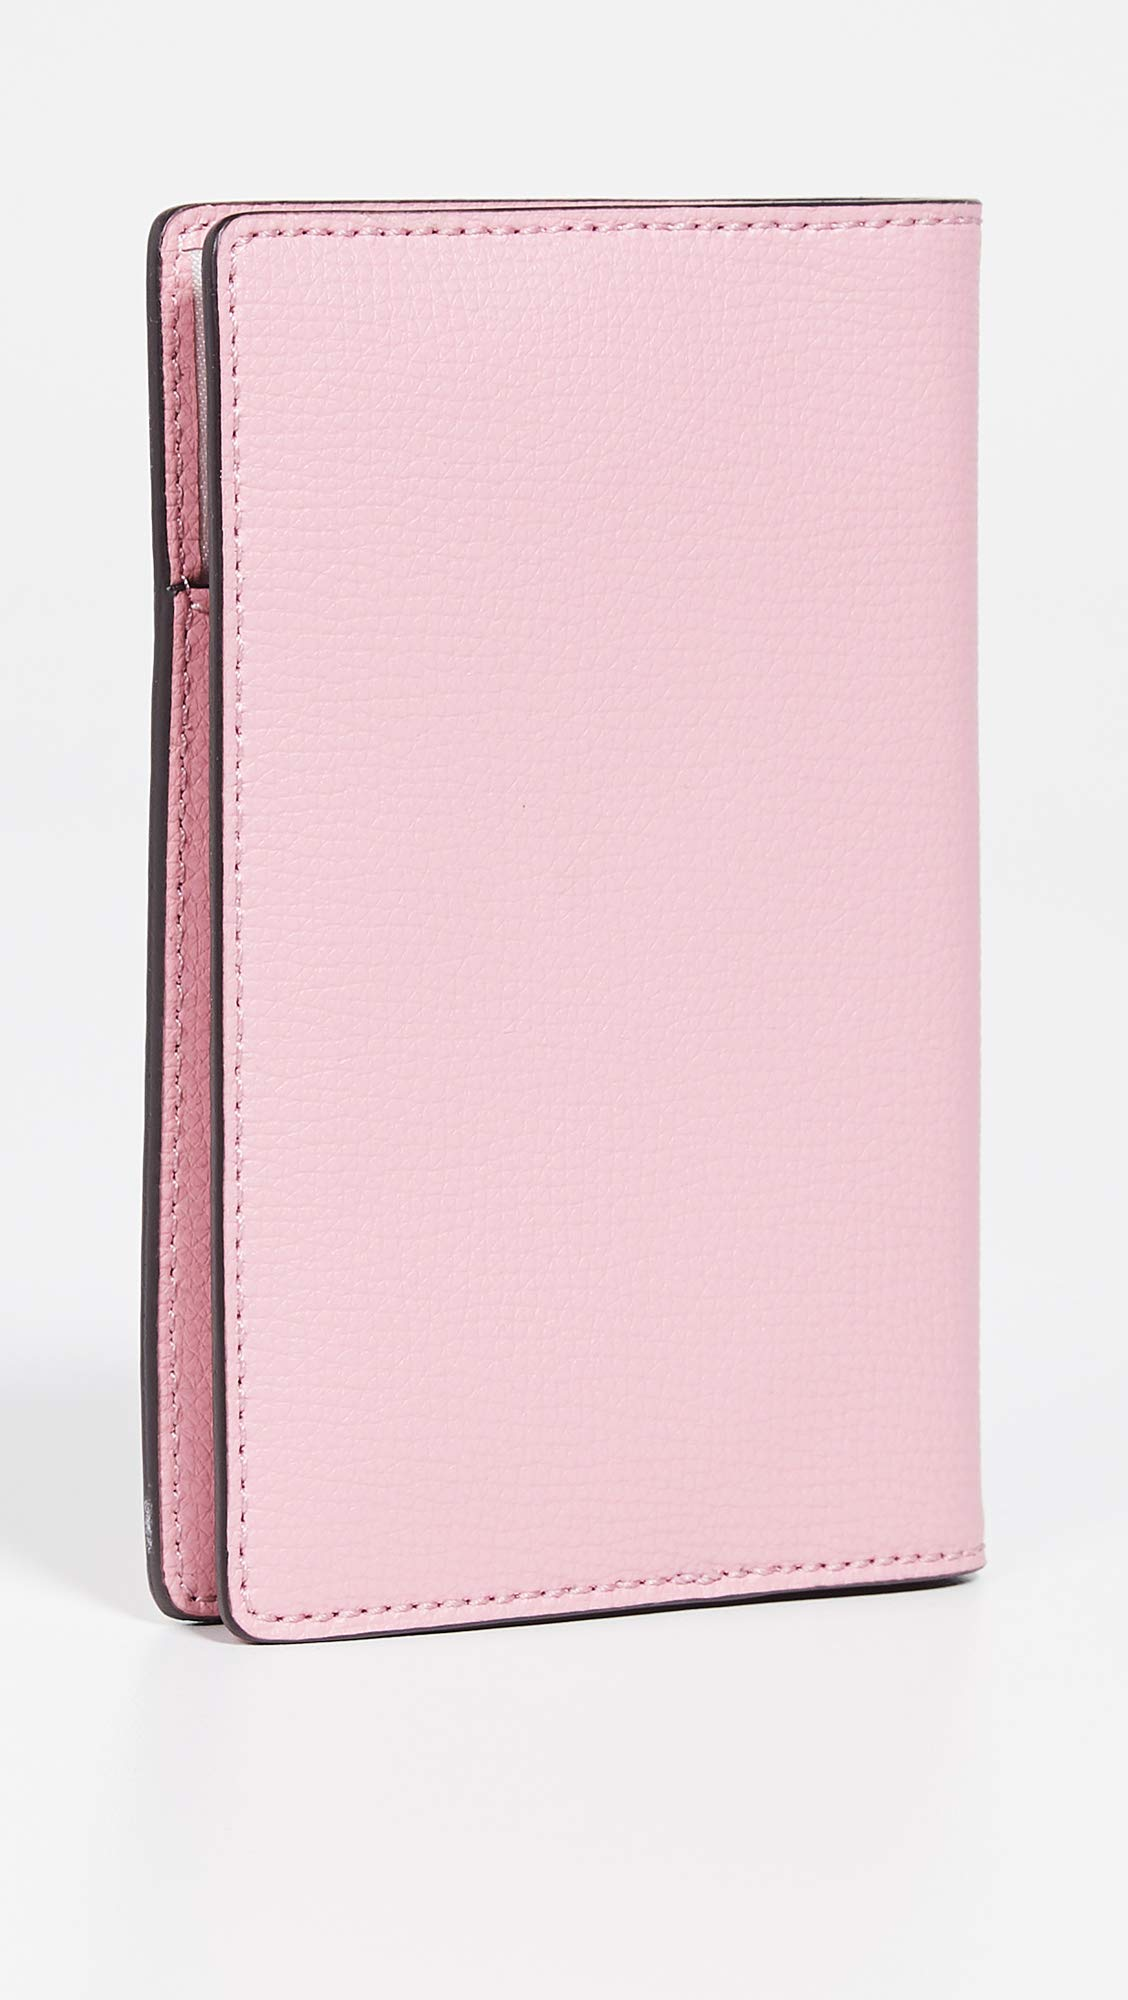 Kate Spade New York Women's Sylvia Passport Holder, Rococo Pink, One Size by Kate Spade New York (Image #3)